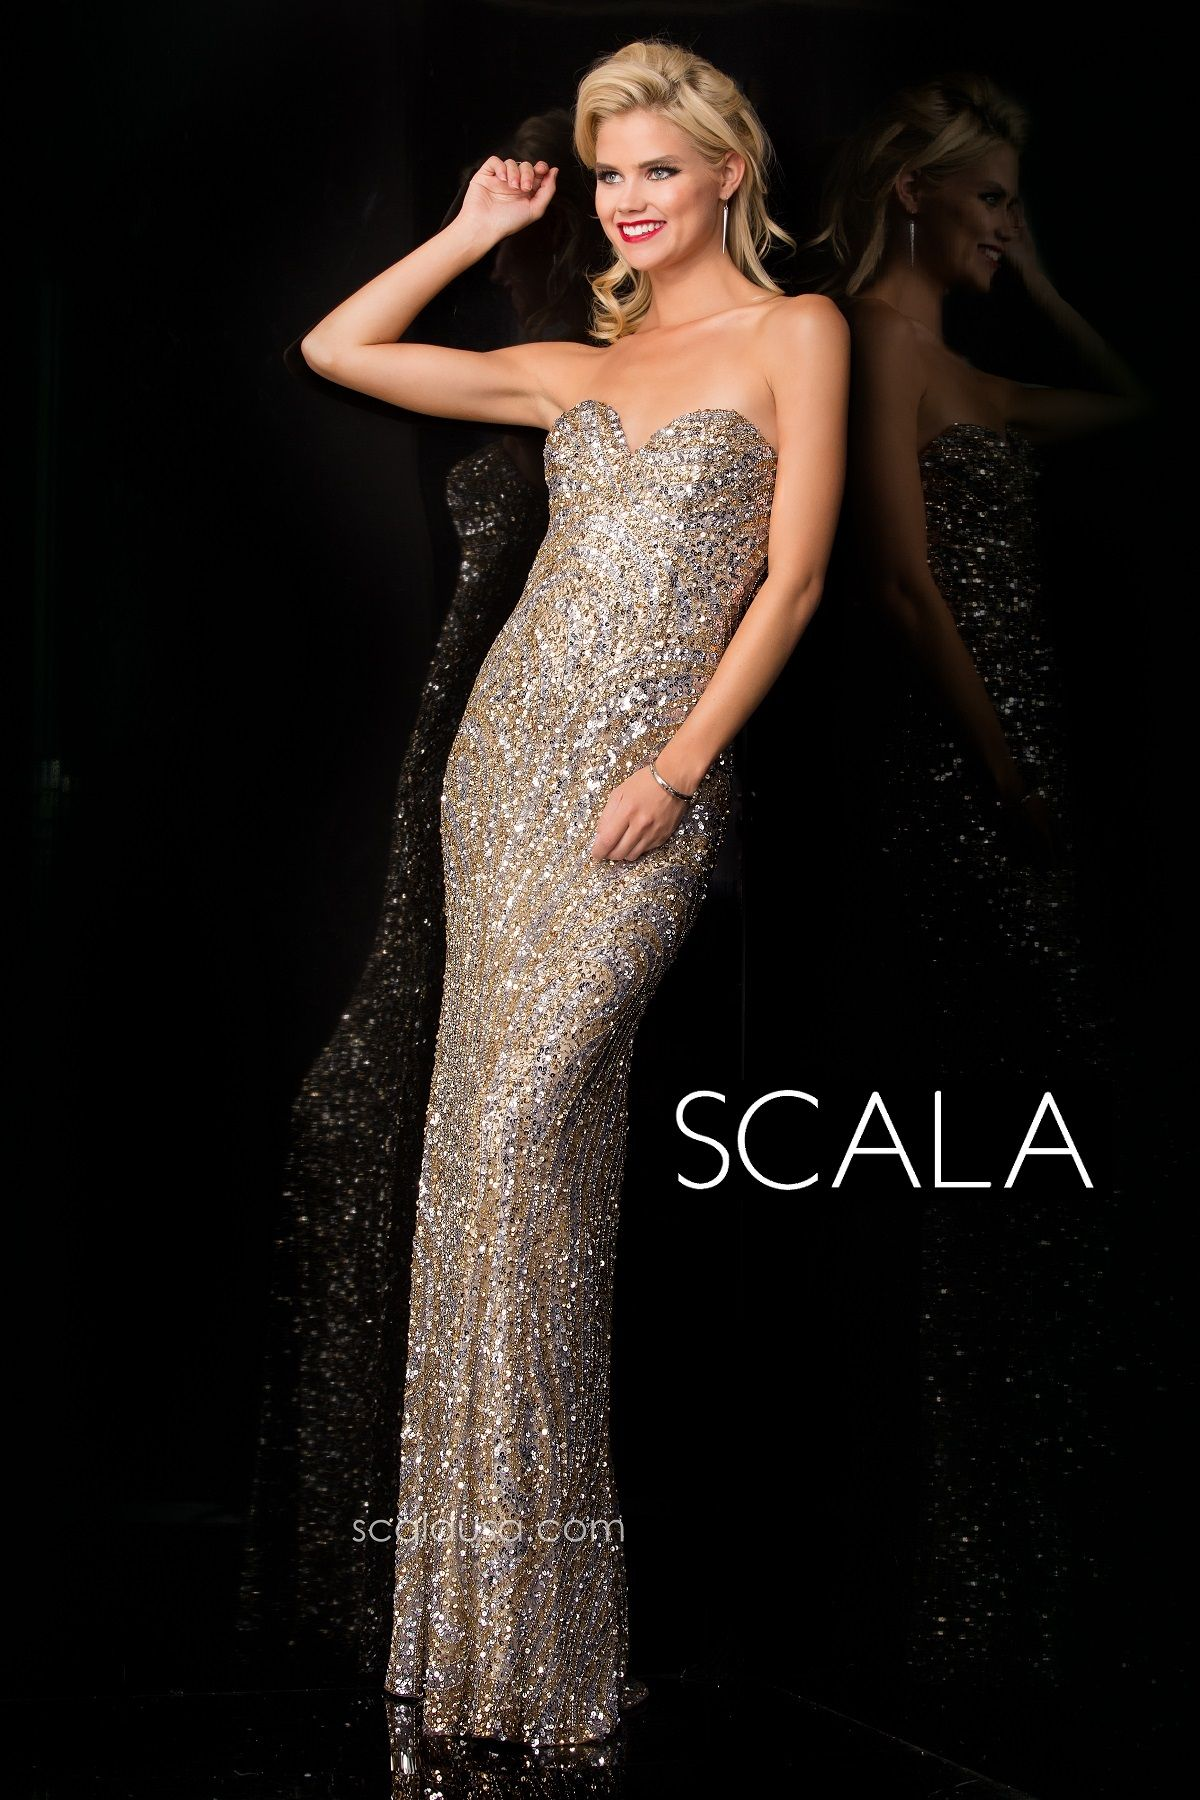 Wear to wedding dresses  SCALA style  LeadSilverGold PromK Spring Prom